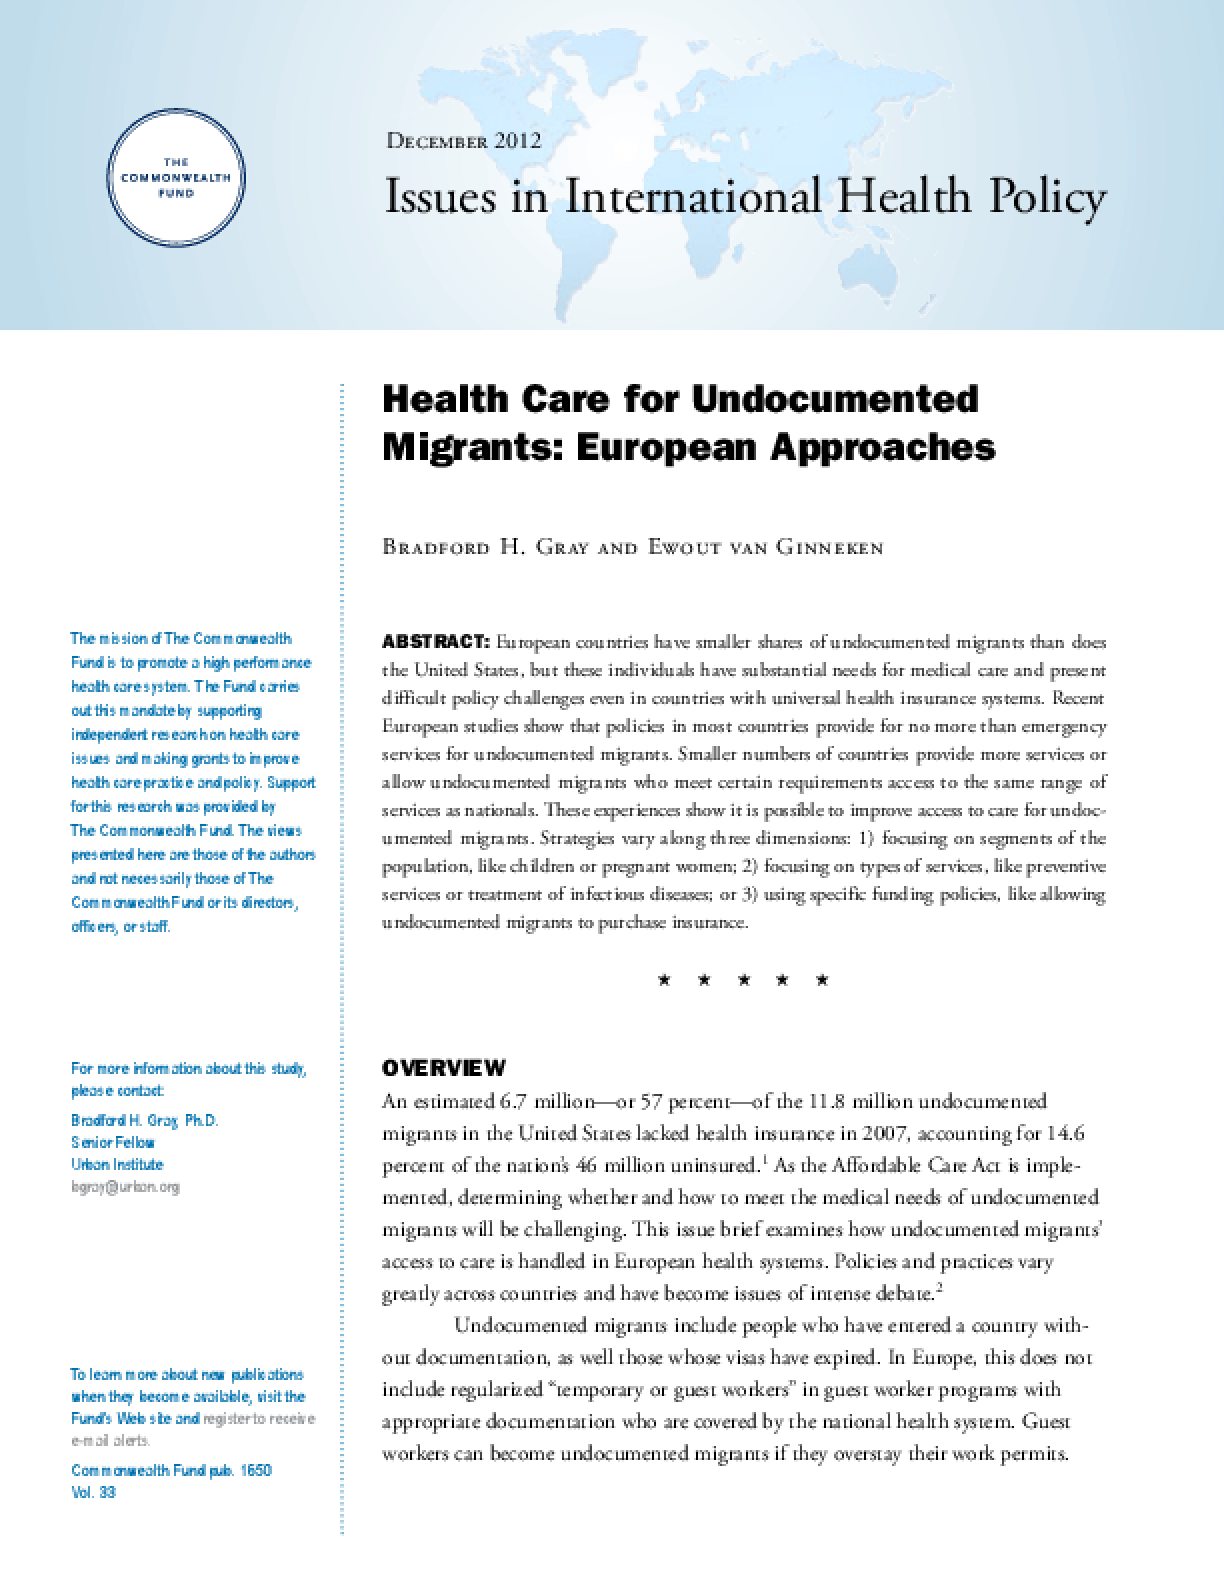 Health Care for Undocumented Migrants: European Approaches